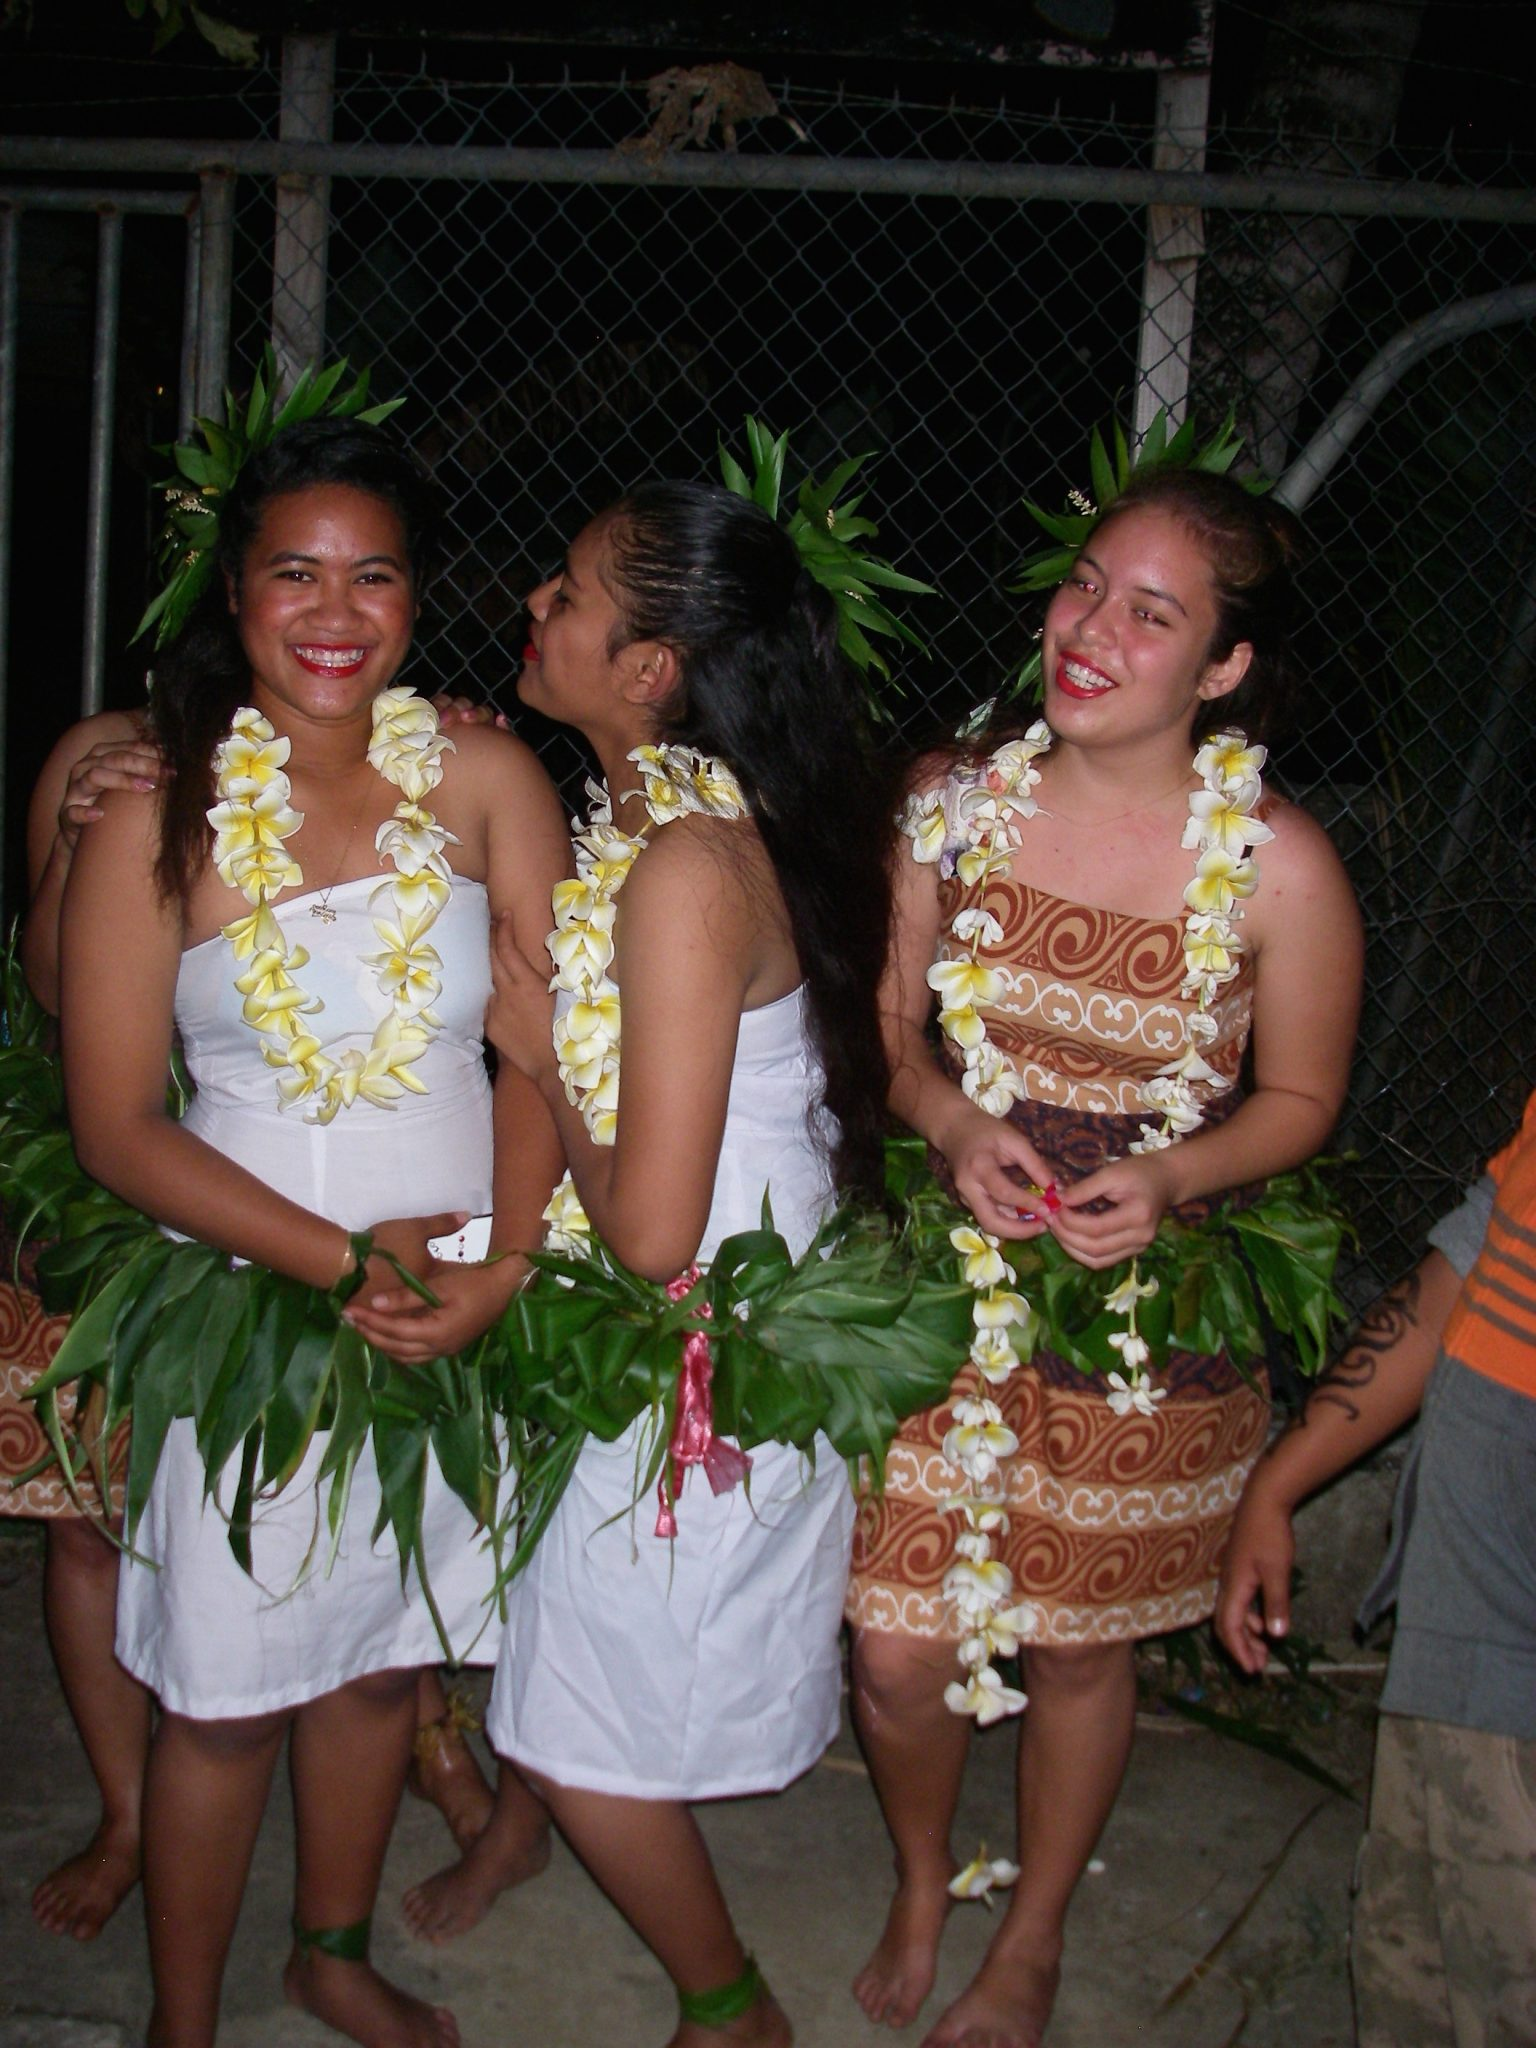 29. Pretty Tongan young ladies demonstrated traditional dancing at a festival